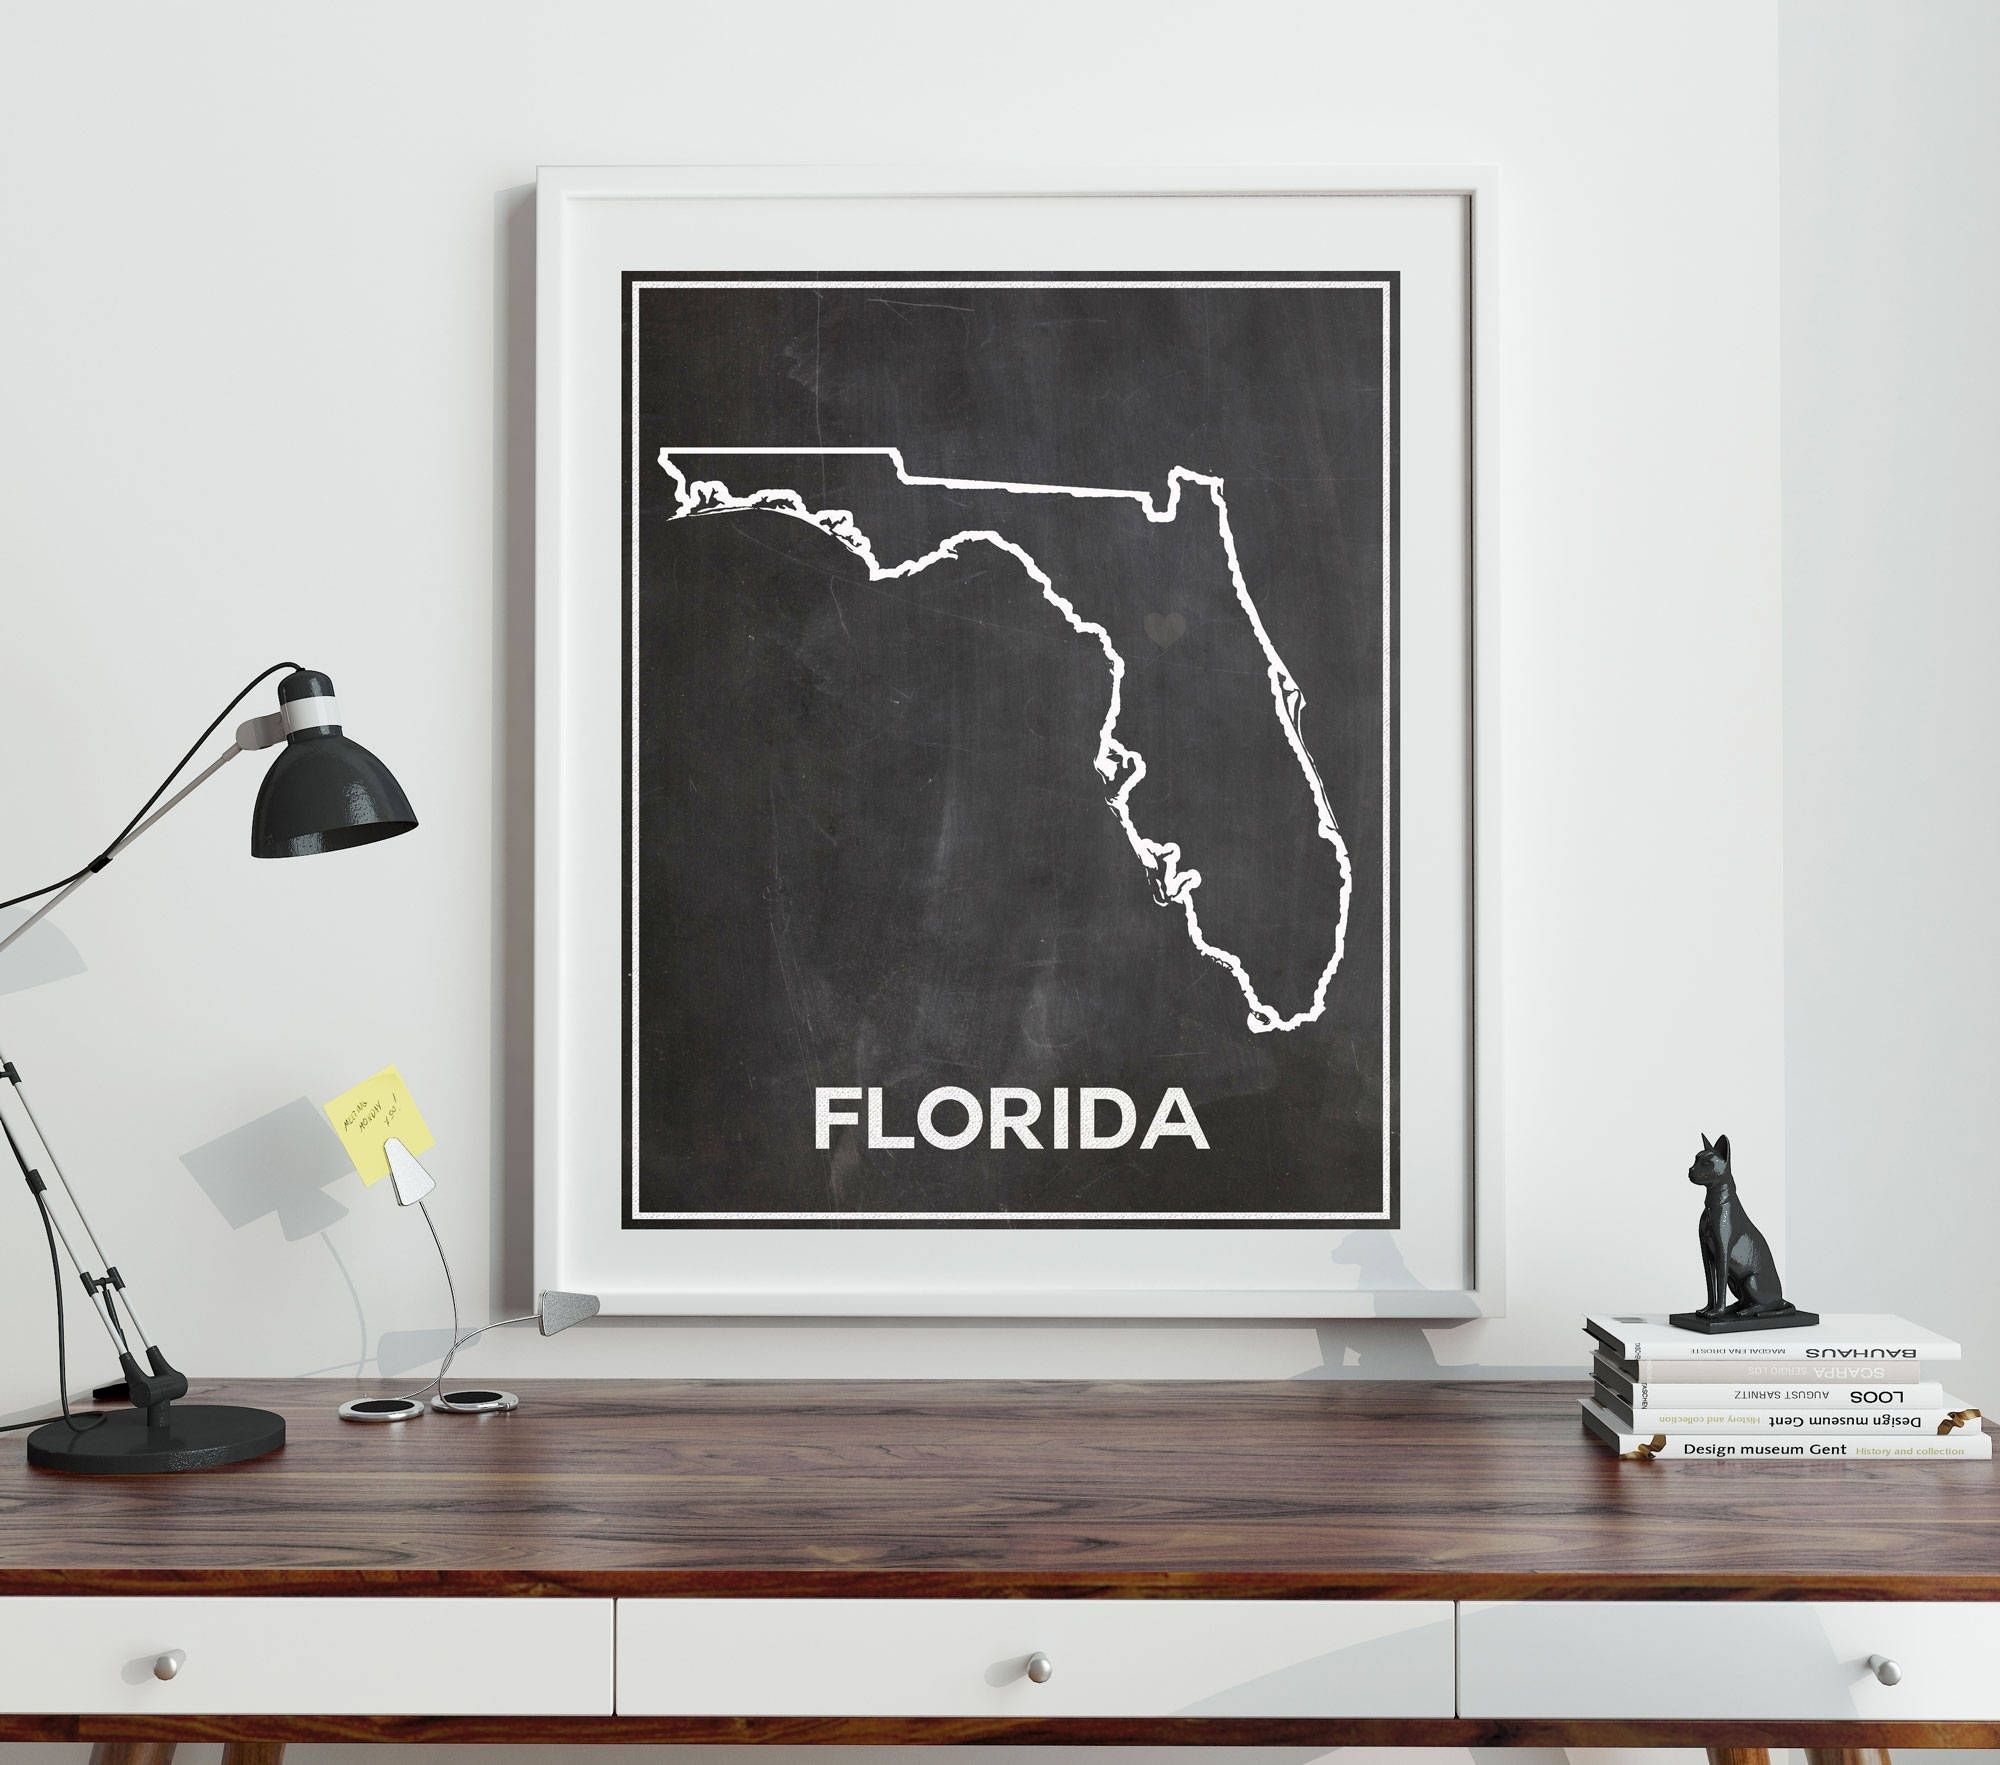 Florida Chalkboard Map Of Florida Florida Poster Florida Wall Art Pertaining To Current Florida Wall Art (View 3 of 20)